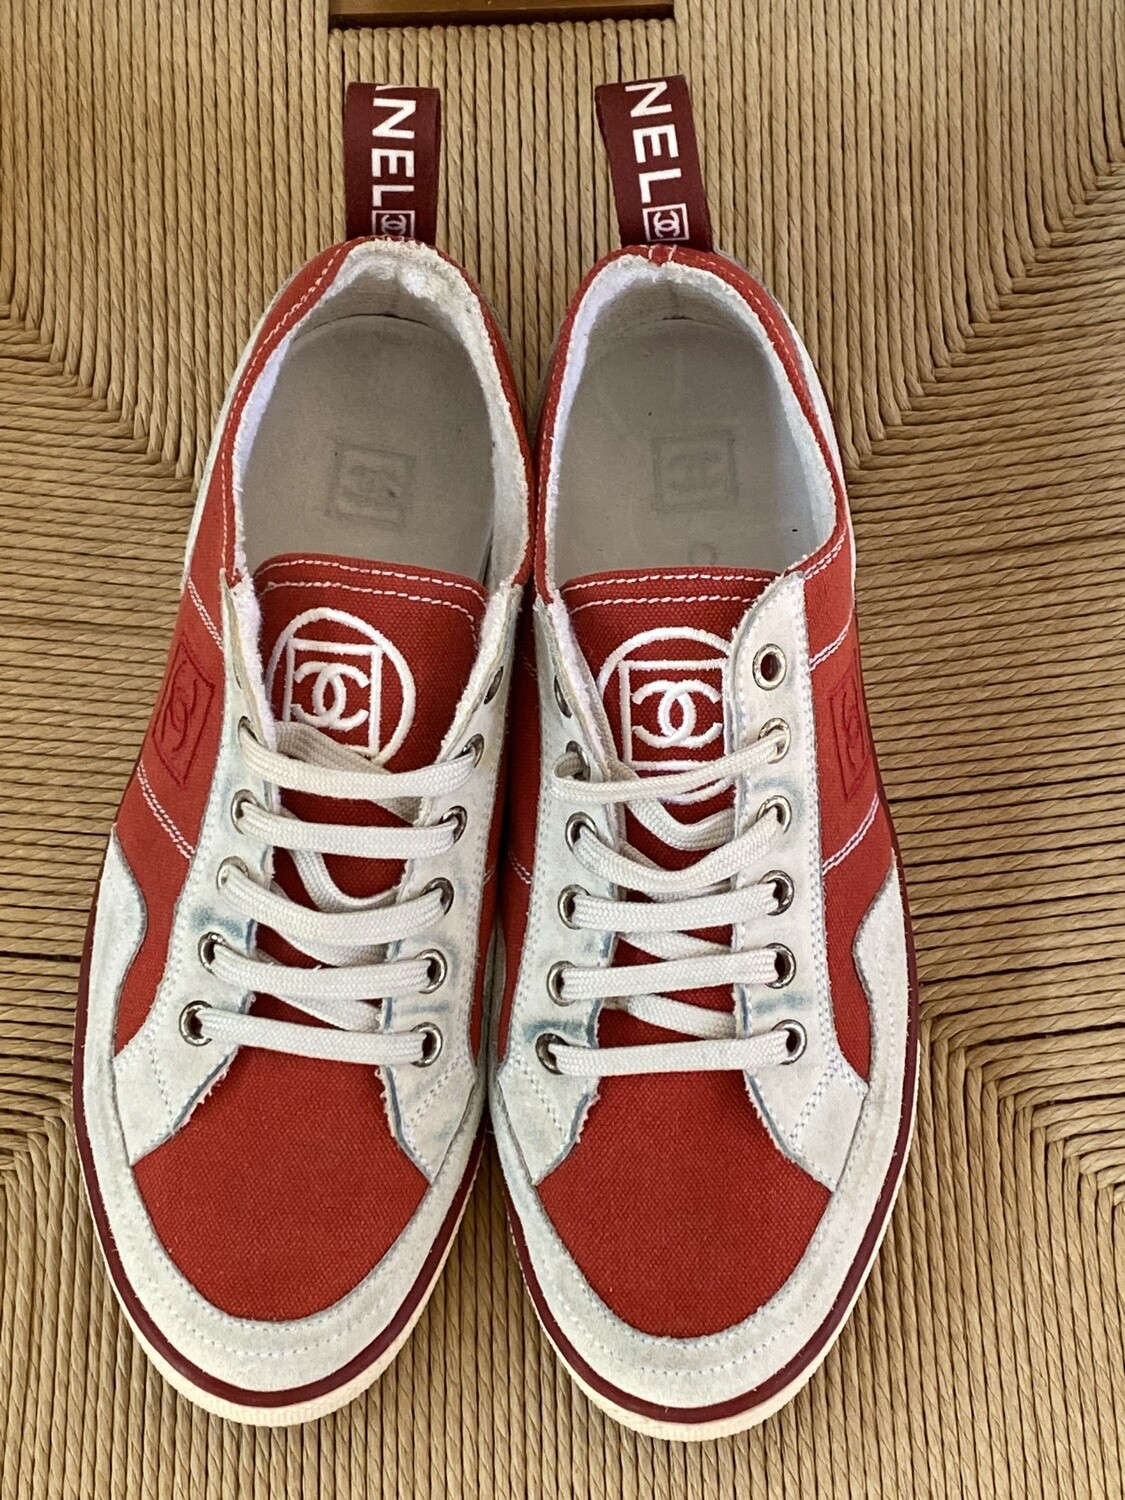 CHANEL CC LOGO RED SNEAKERS WITH WEBBING 38.5 / 7.5